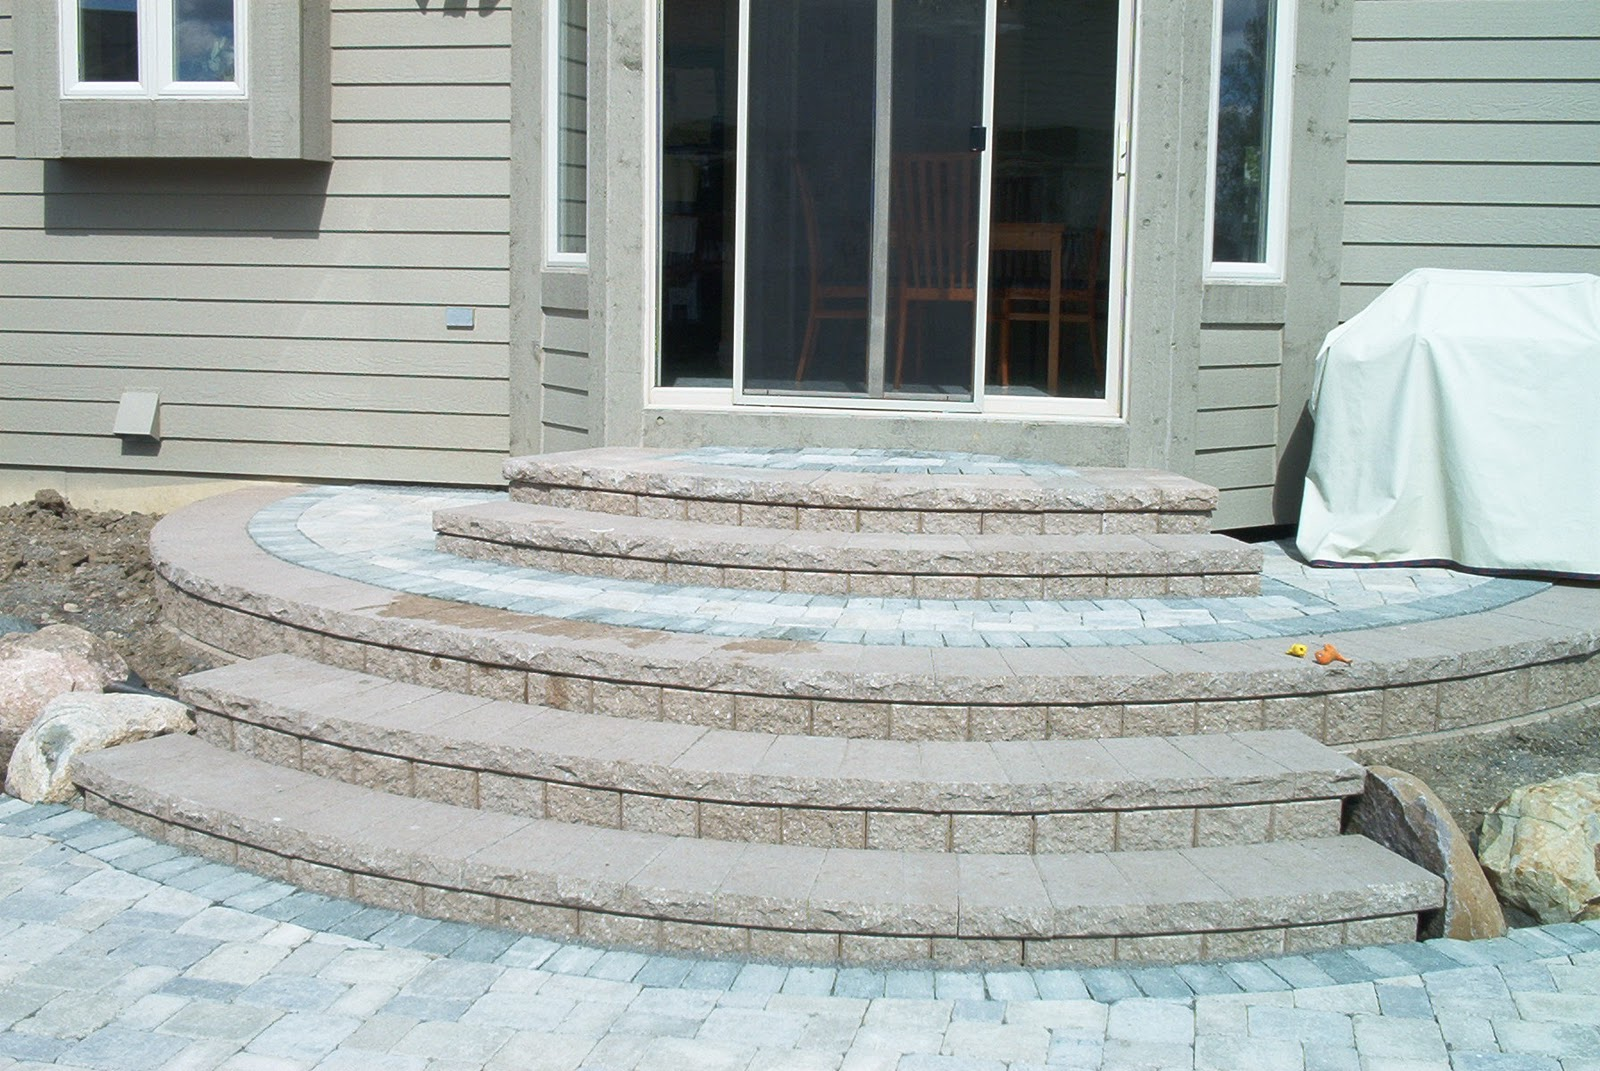 How to build steps with pavers - Steps Leading To Brick Paver Patio Are Very Important